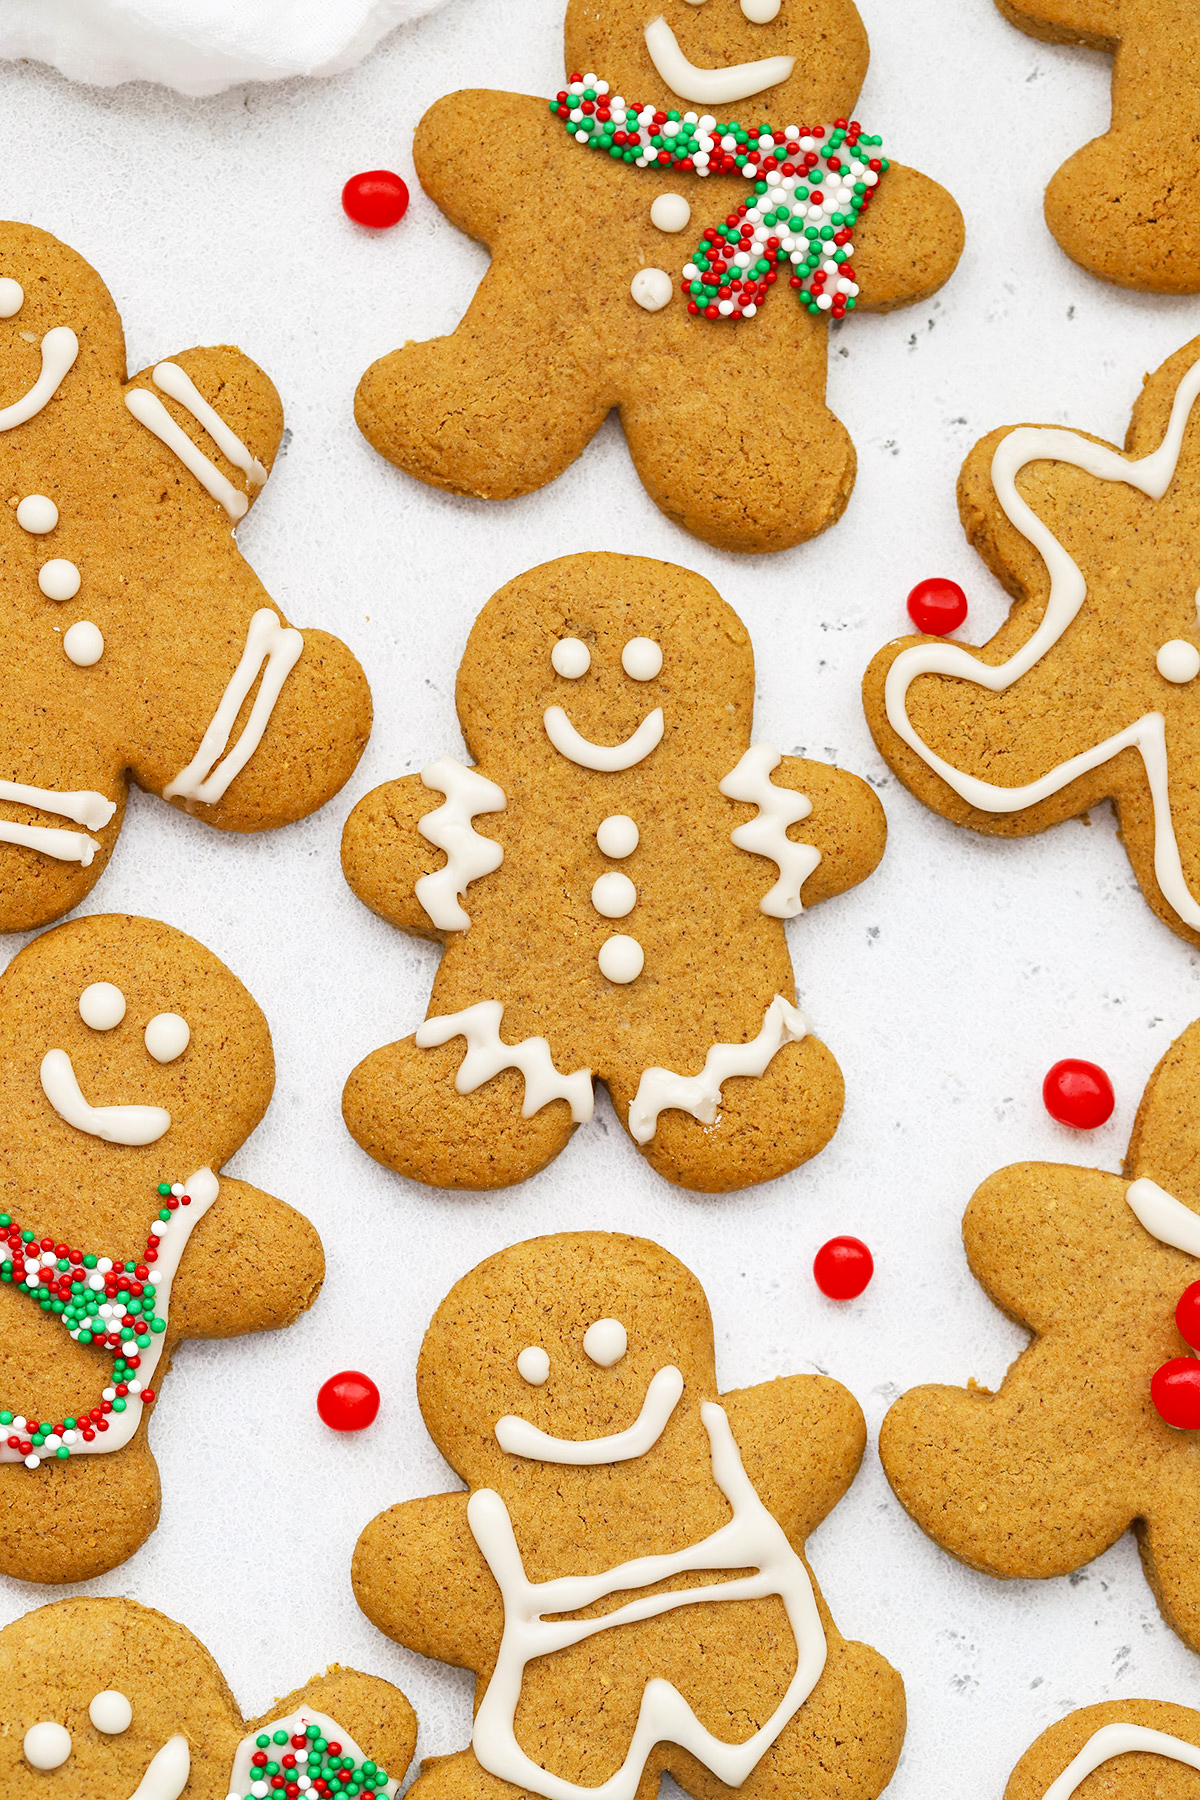 Close up Overhead view of decorated gluten free gingerbread men cookies on a white background